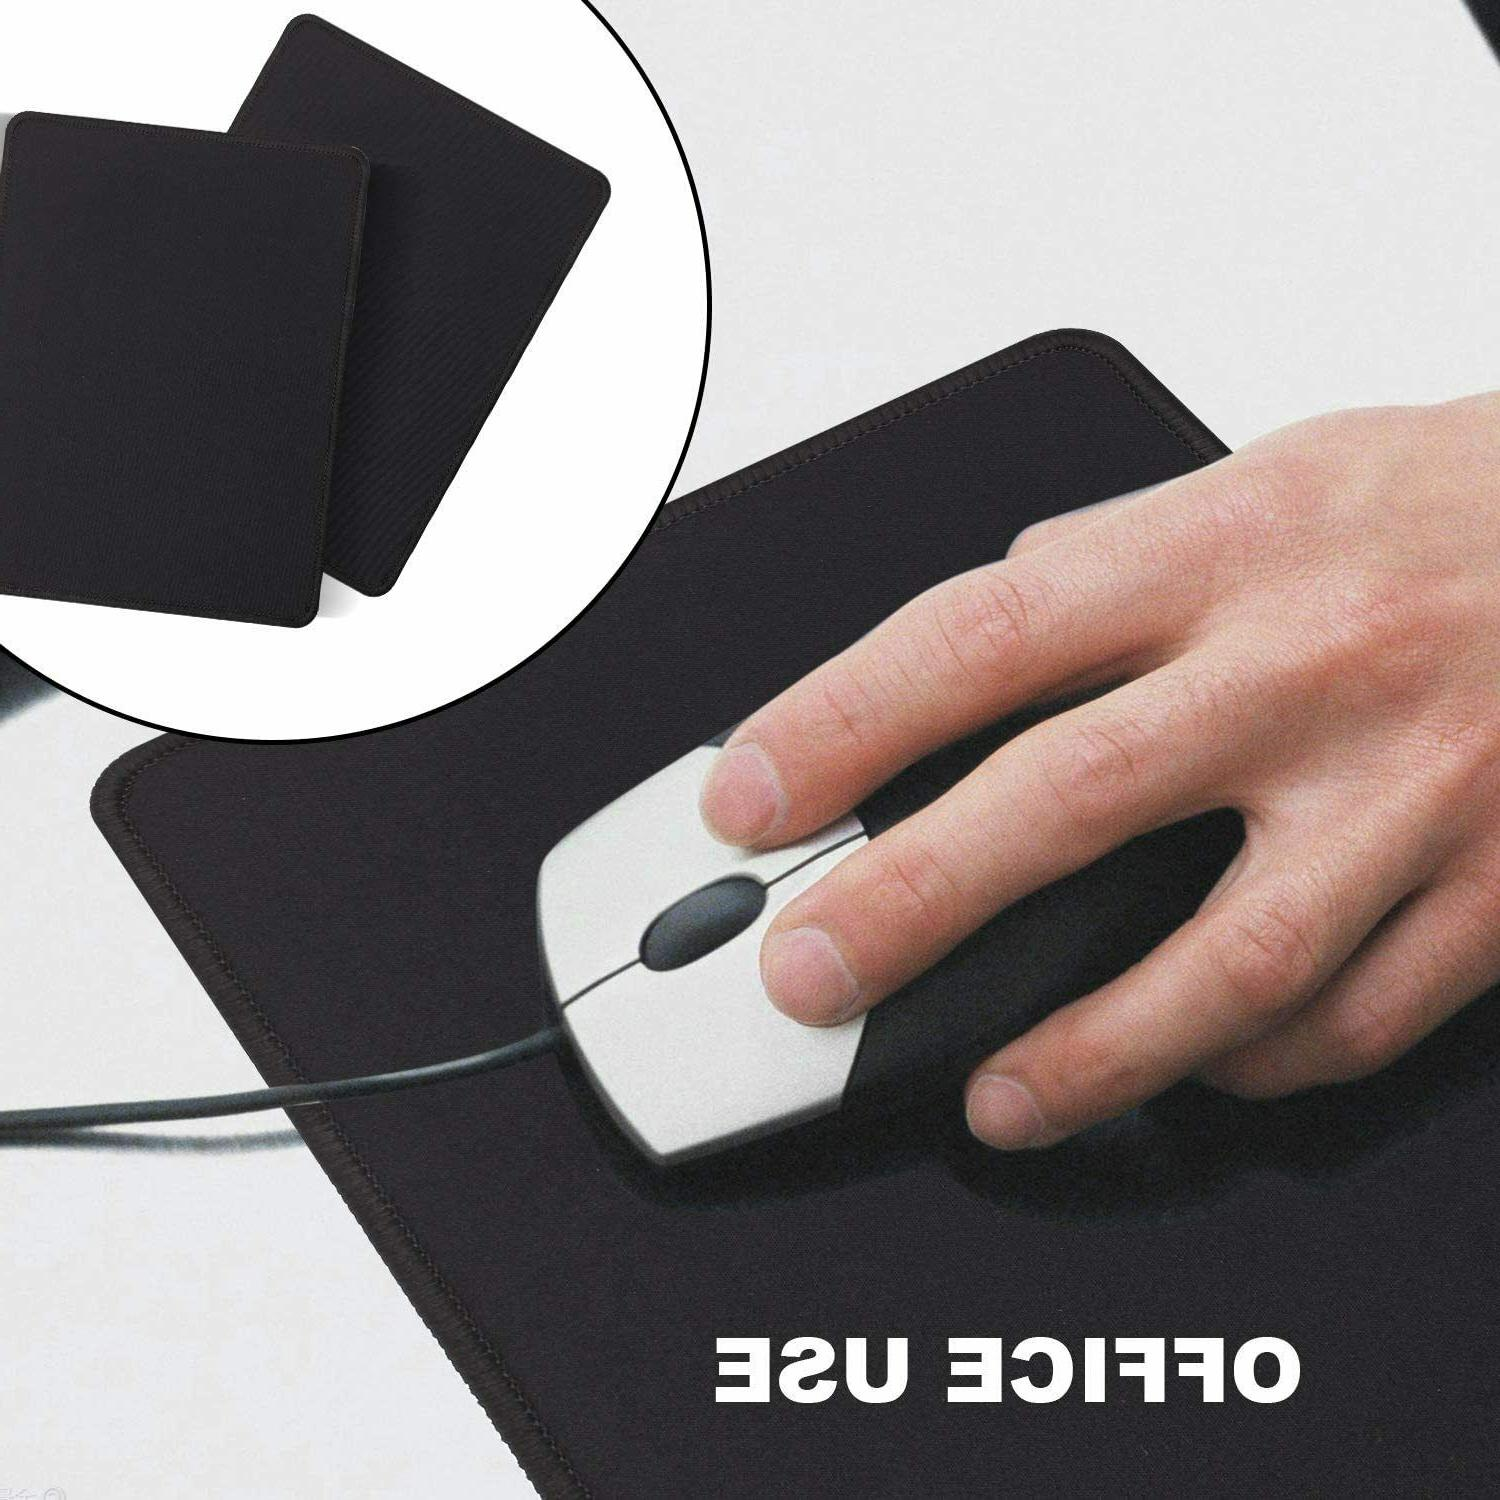 2-Pack Mouse Pad Stitched Edge Antislip Gaming Computer